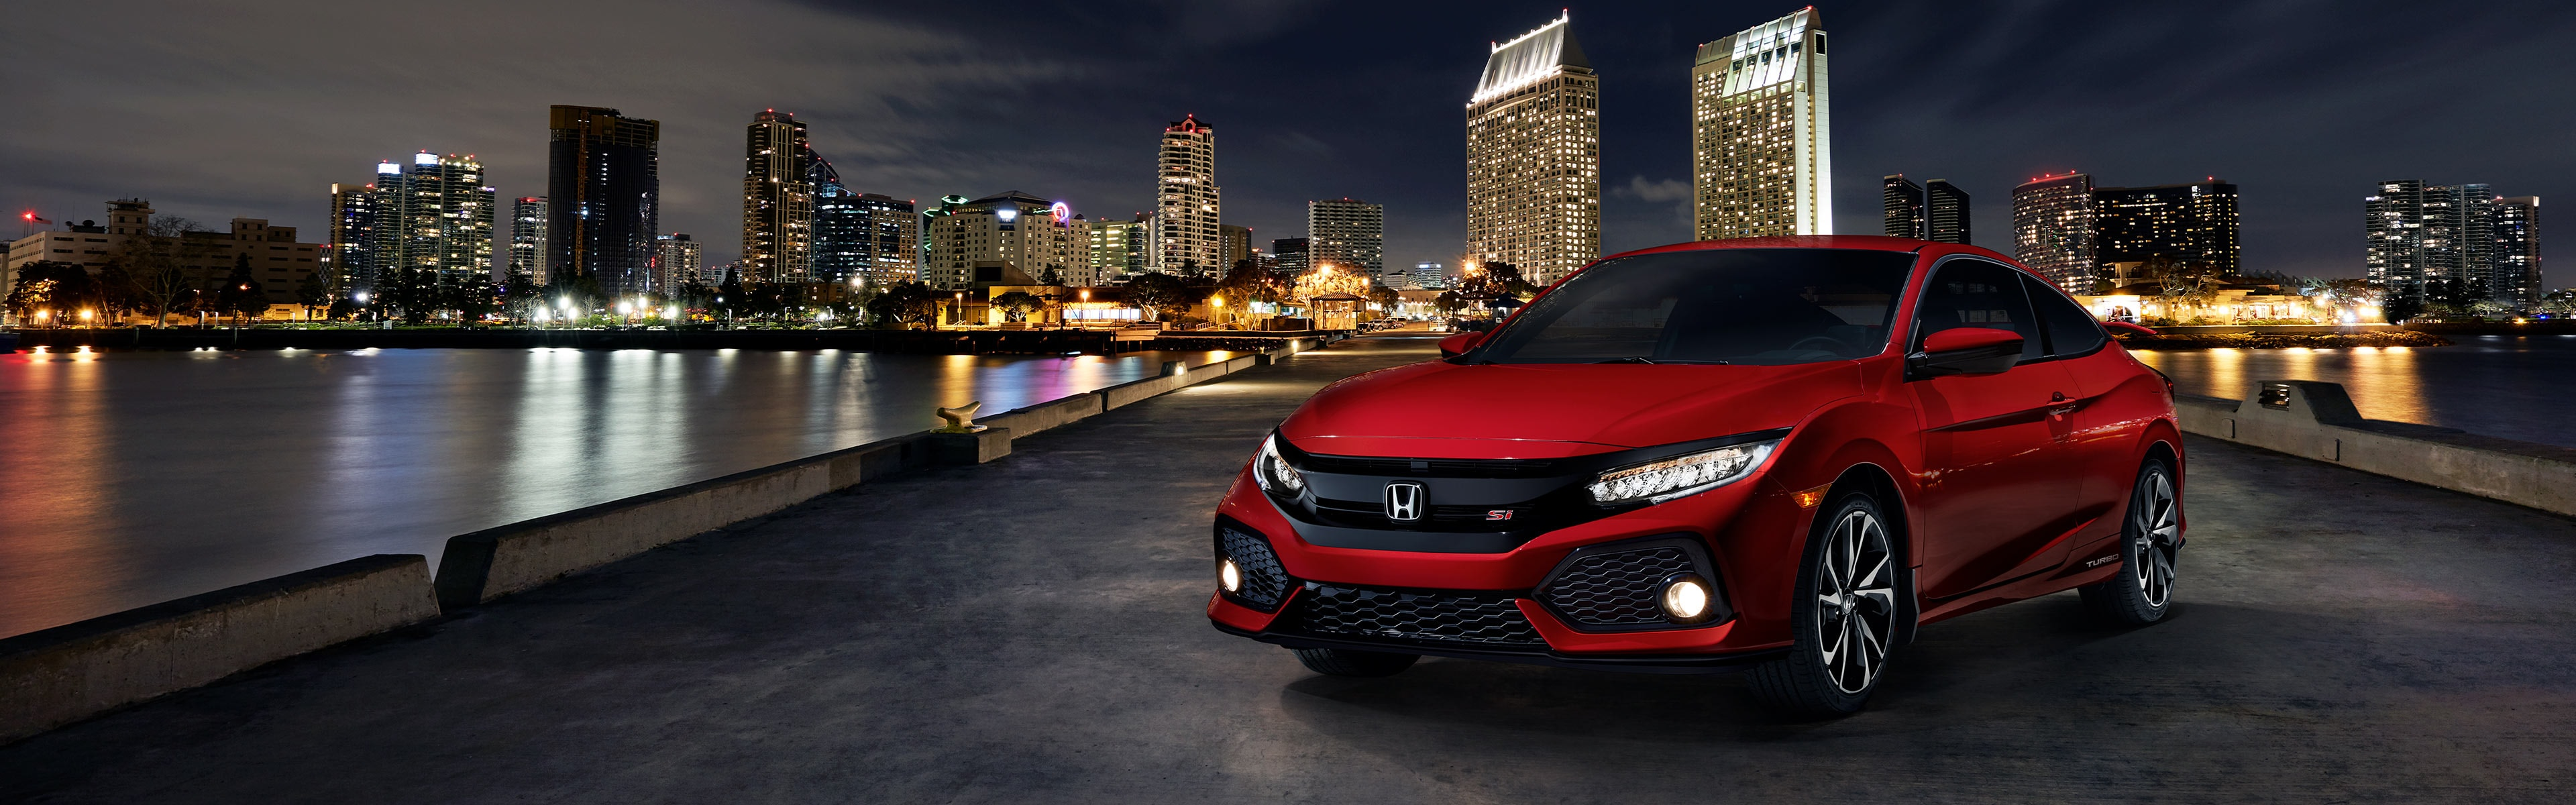 Image of 2017 Civic Coupe